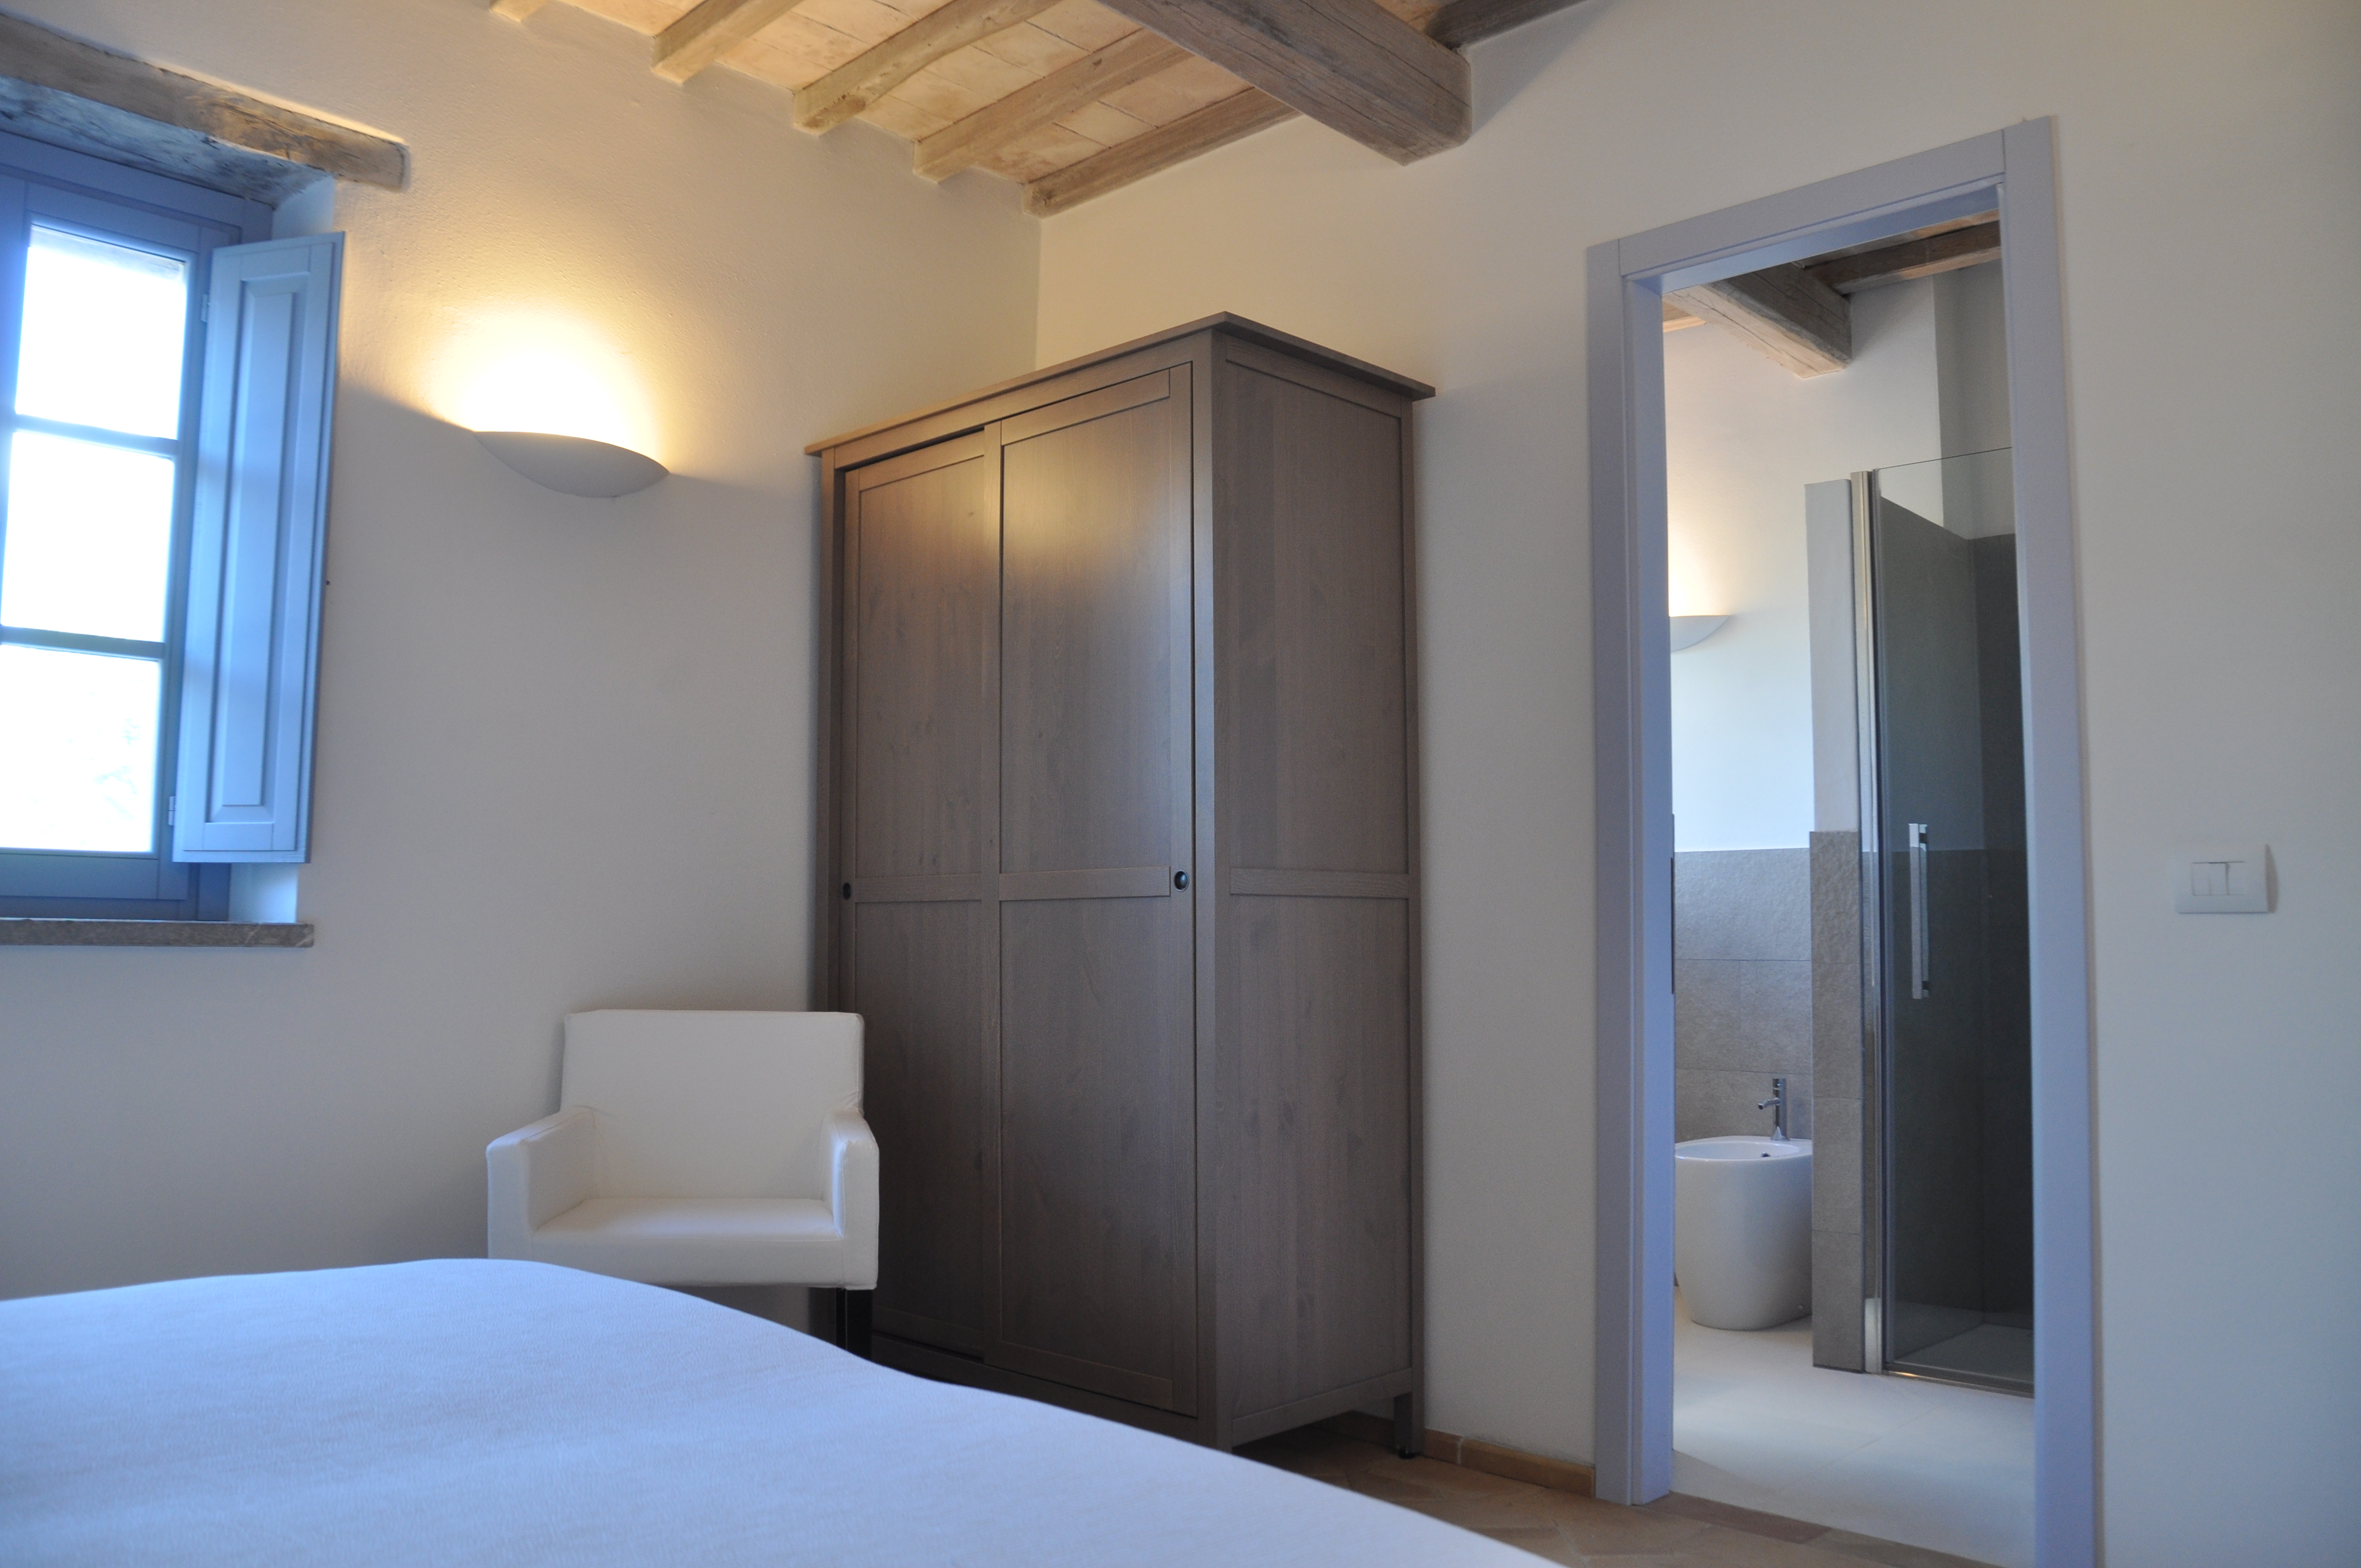 All rooms are en suite rooms